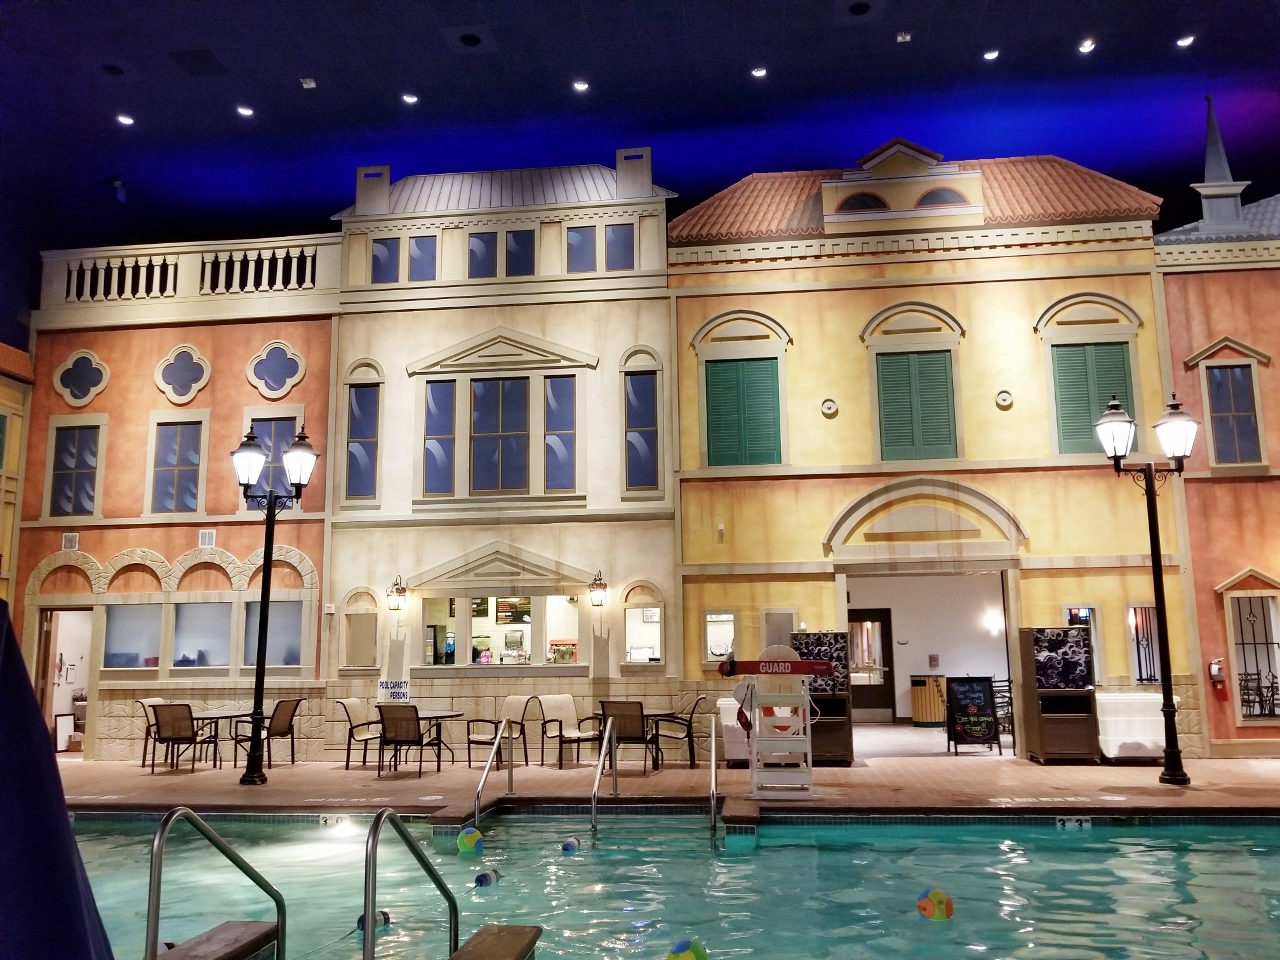 Hey, This Holiday Inn Has a Water Park! Reviews of the